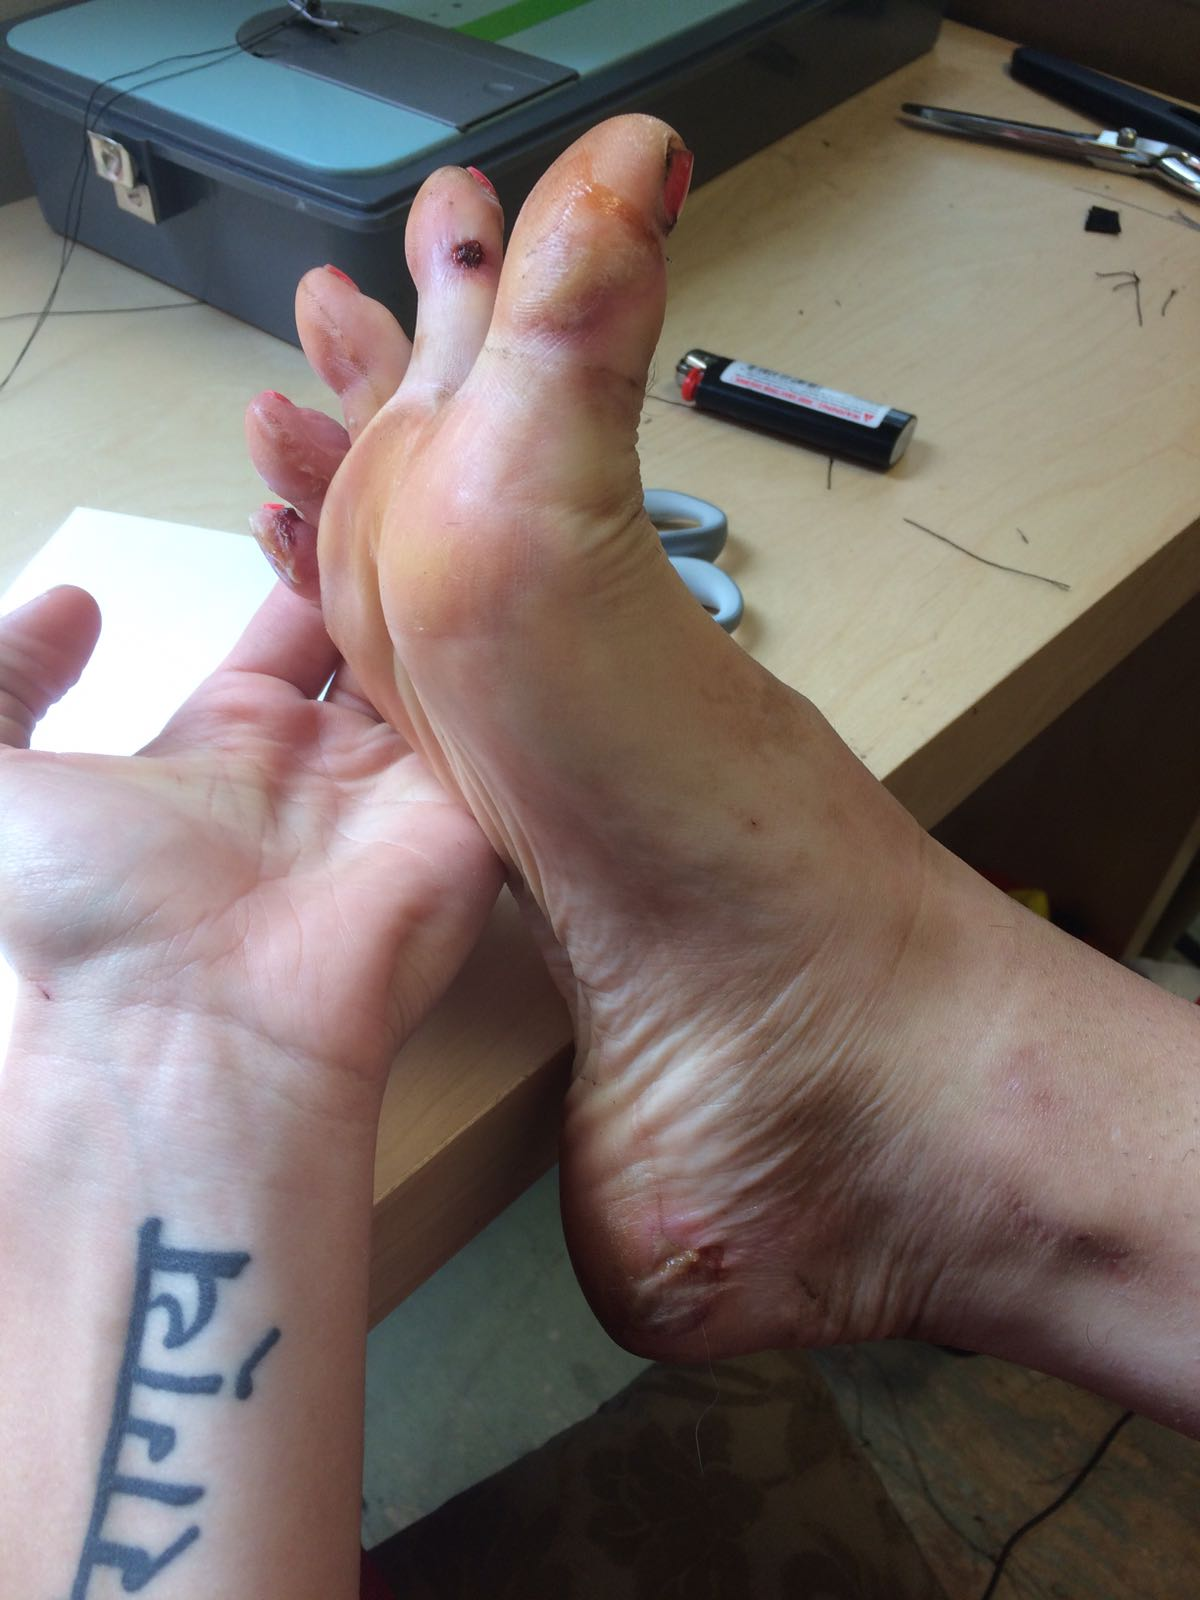 Foot damage and injury after hiking along the Pacific Crest Trail